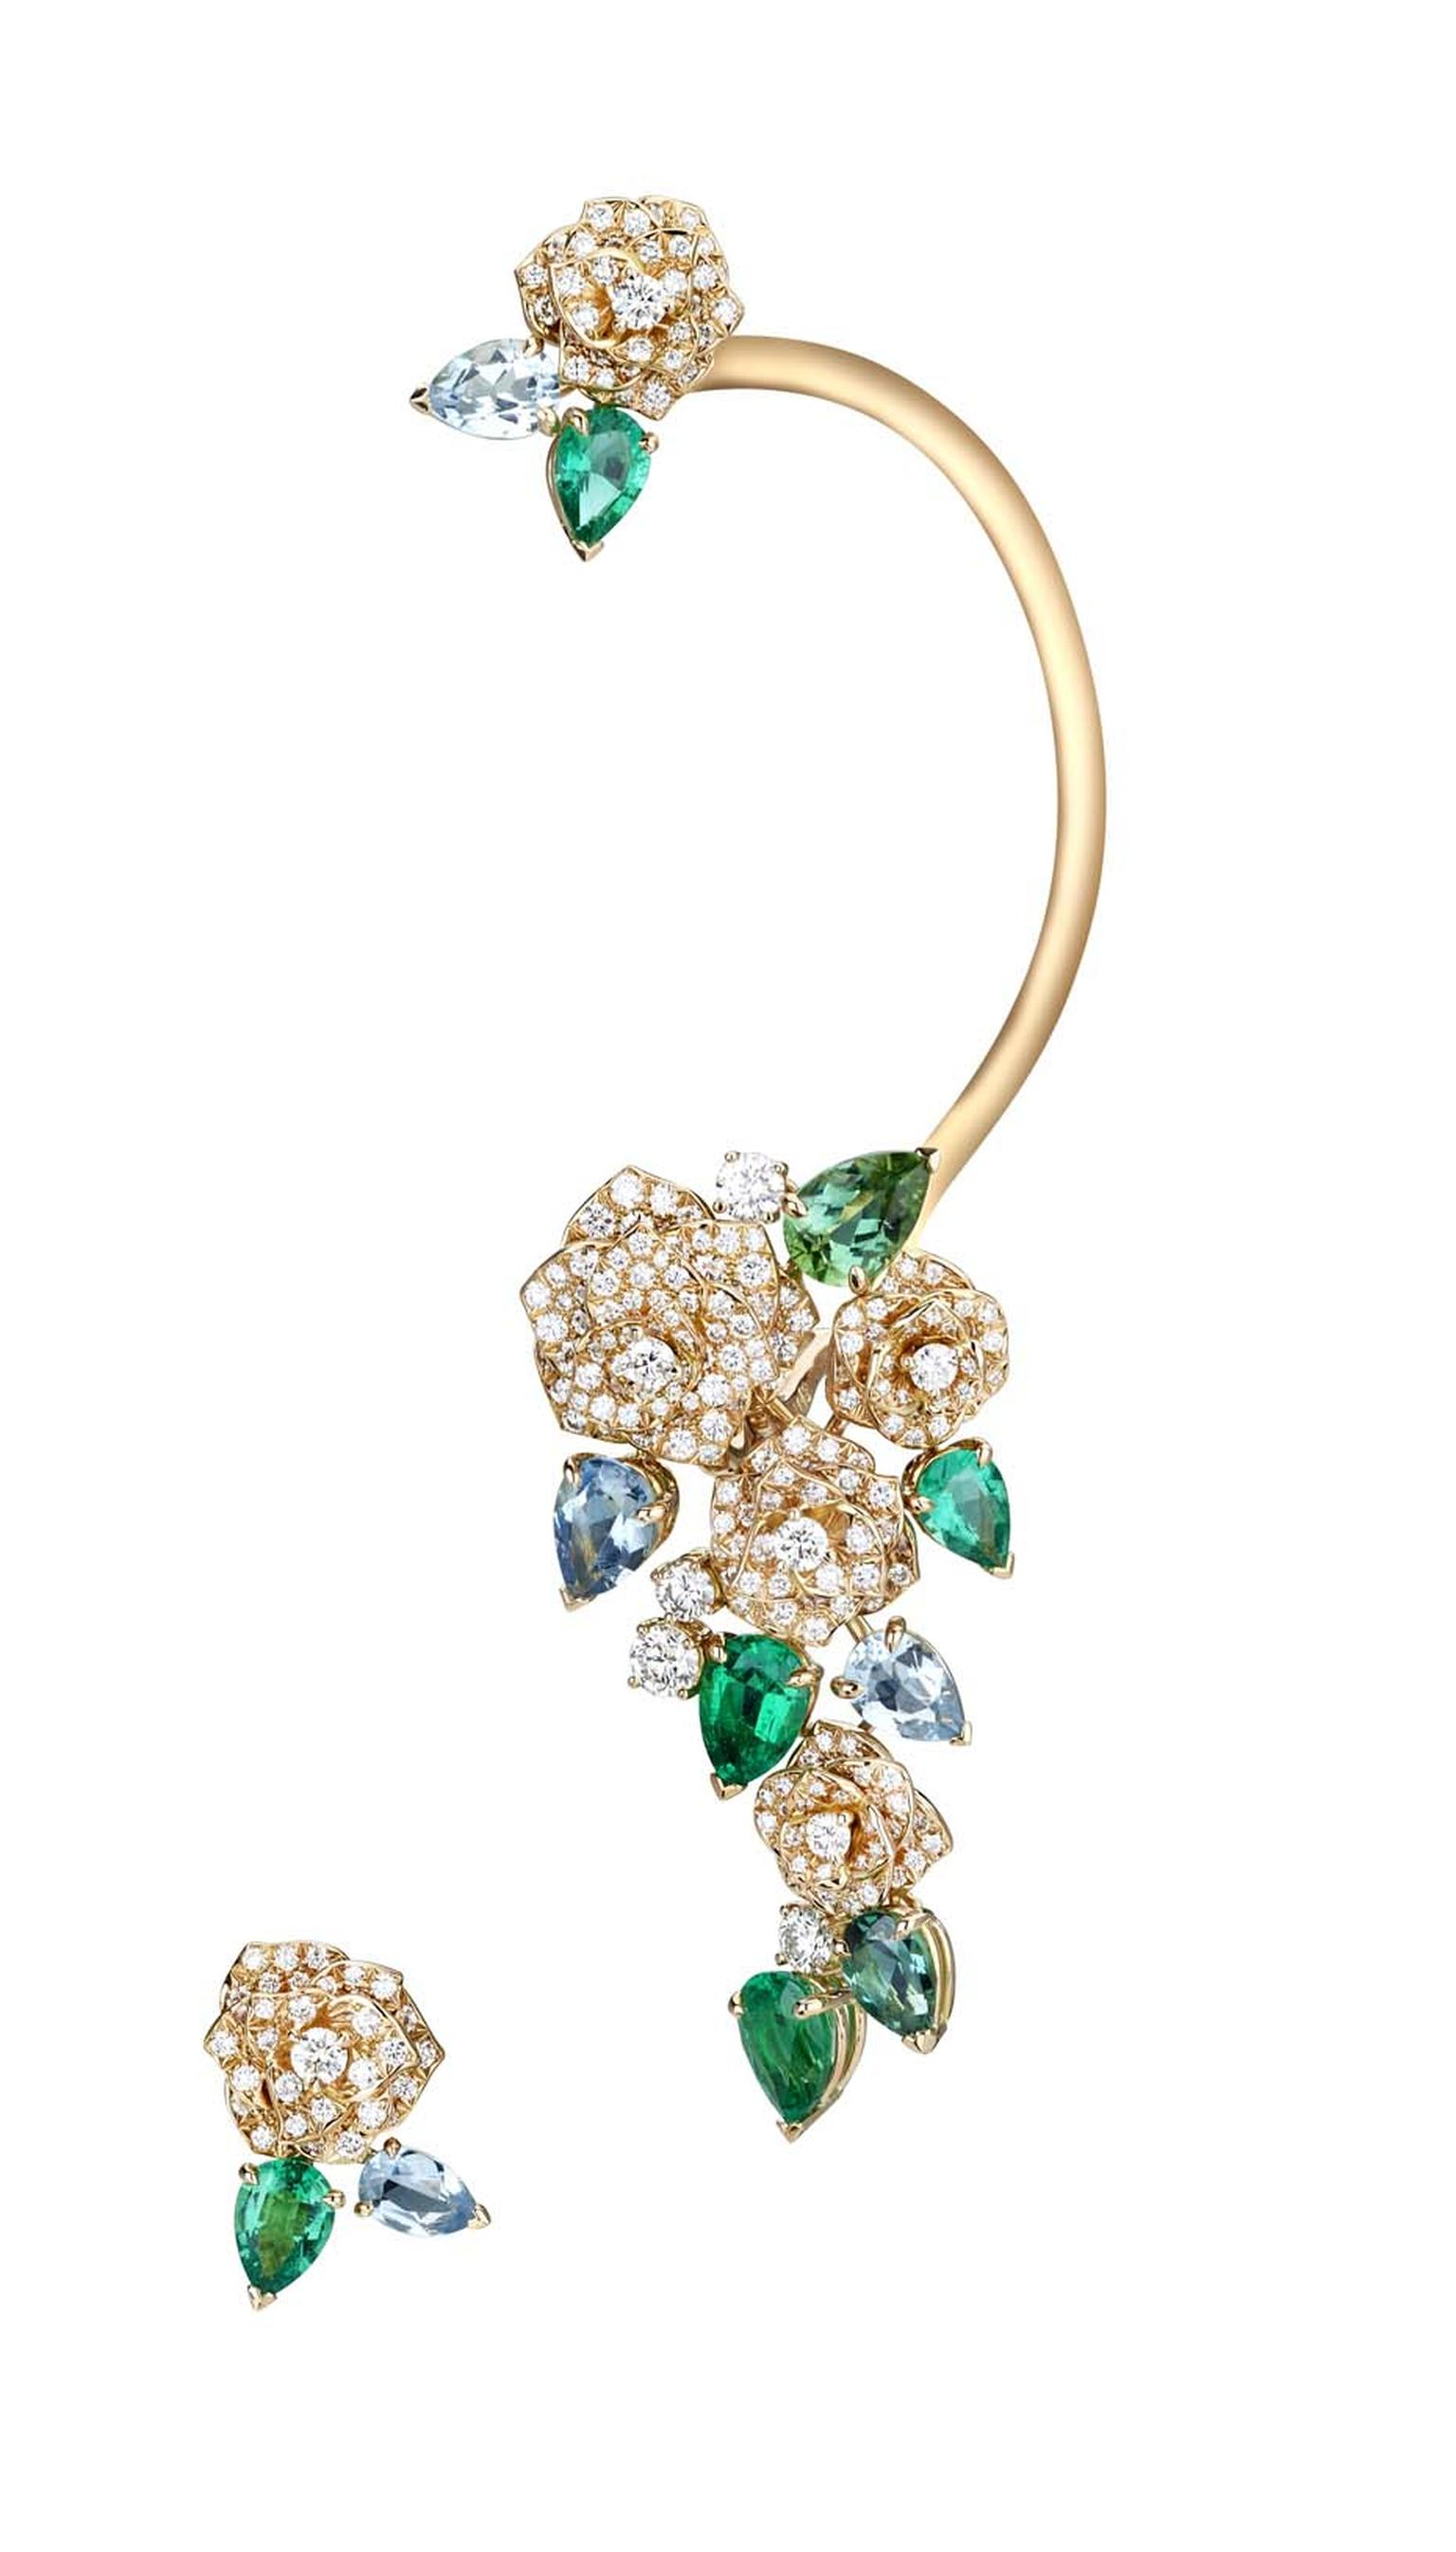 This Piaget Mediterranean Garden ear cuff was the perfect red carpet jewelry choice for edgy actress Scarlett Johansson at this year's Oscars.